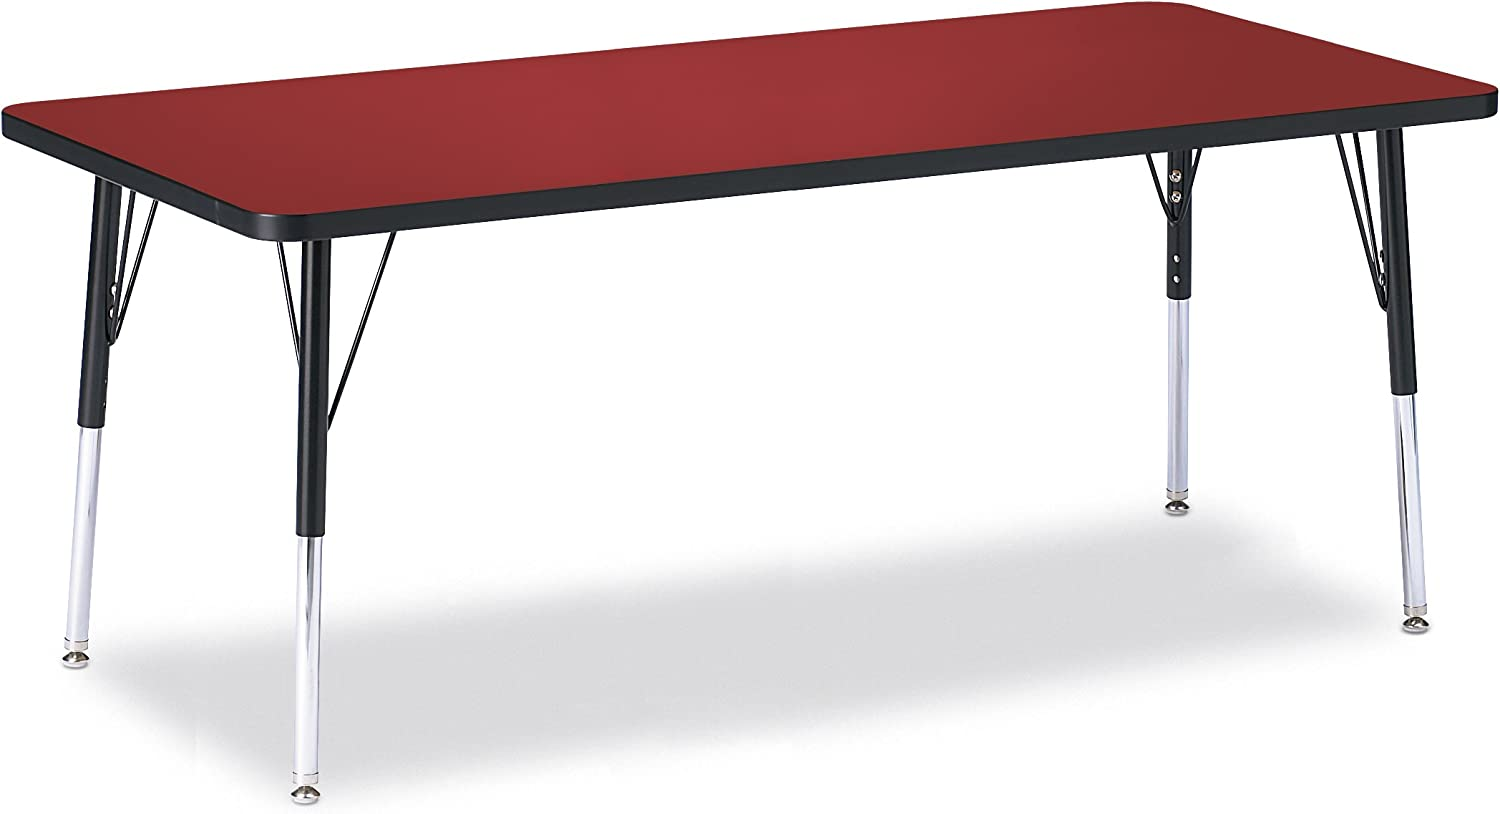 Max 72% Year-end gift OFF Berries 6413JCE188 Rectangle Activity Table 72